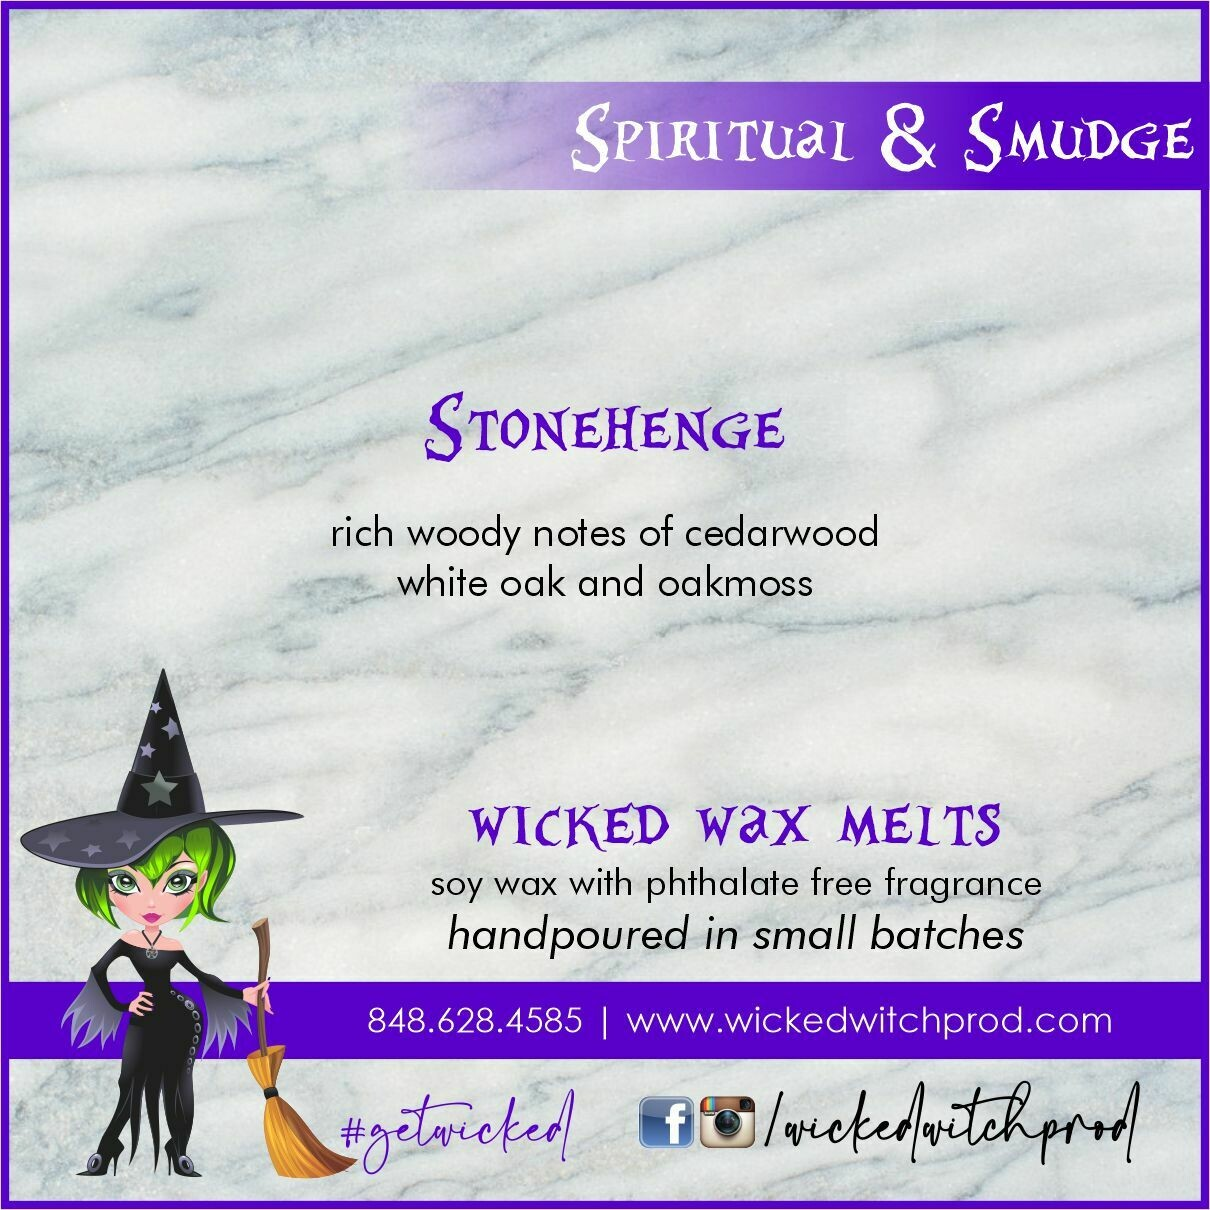 Stonehenge Wicked Wax Melts